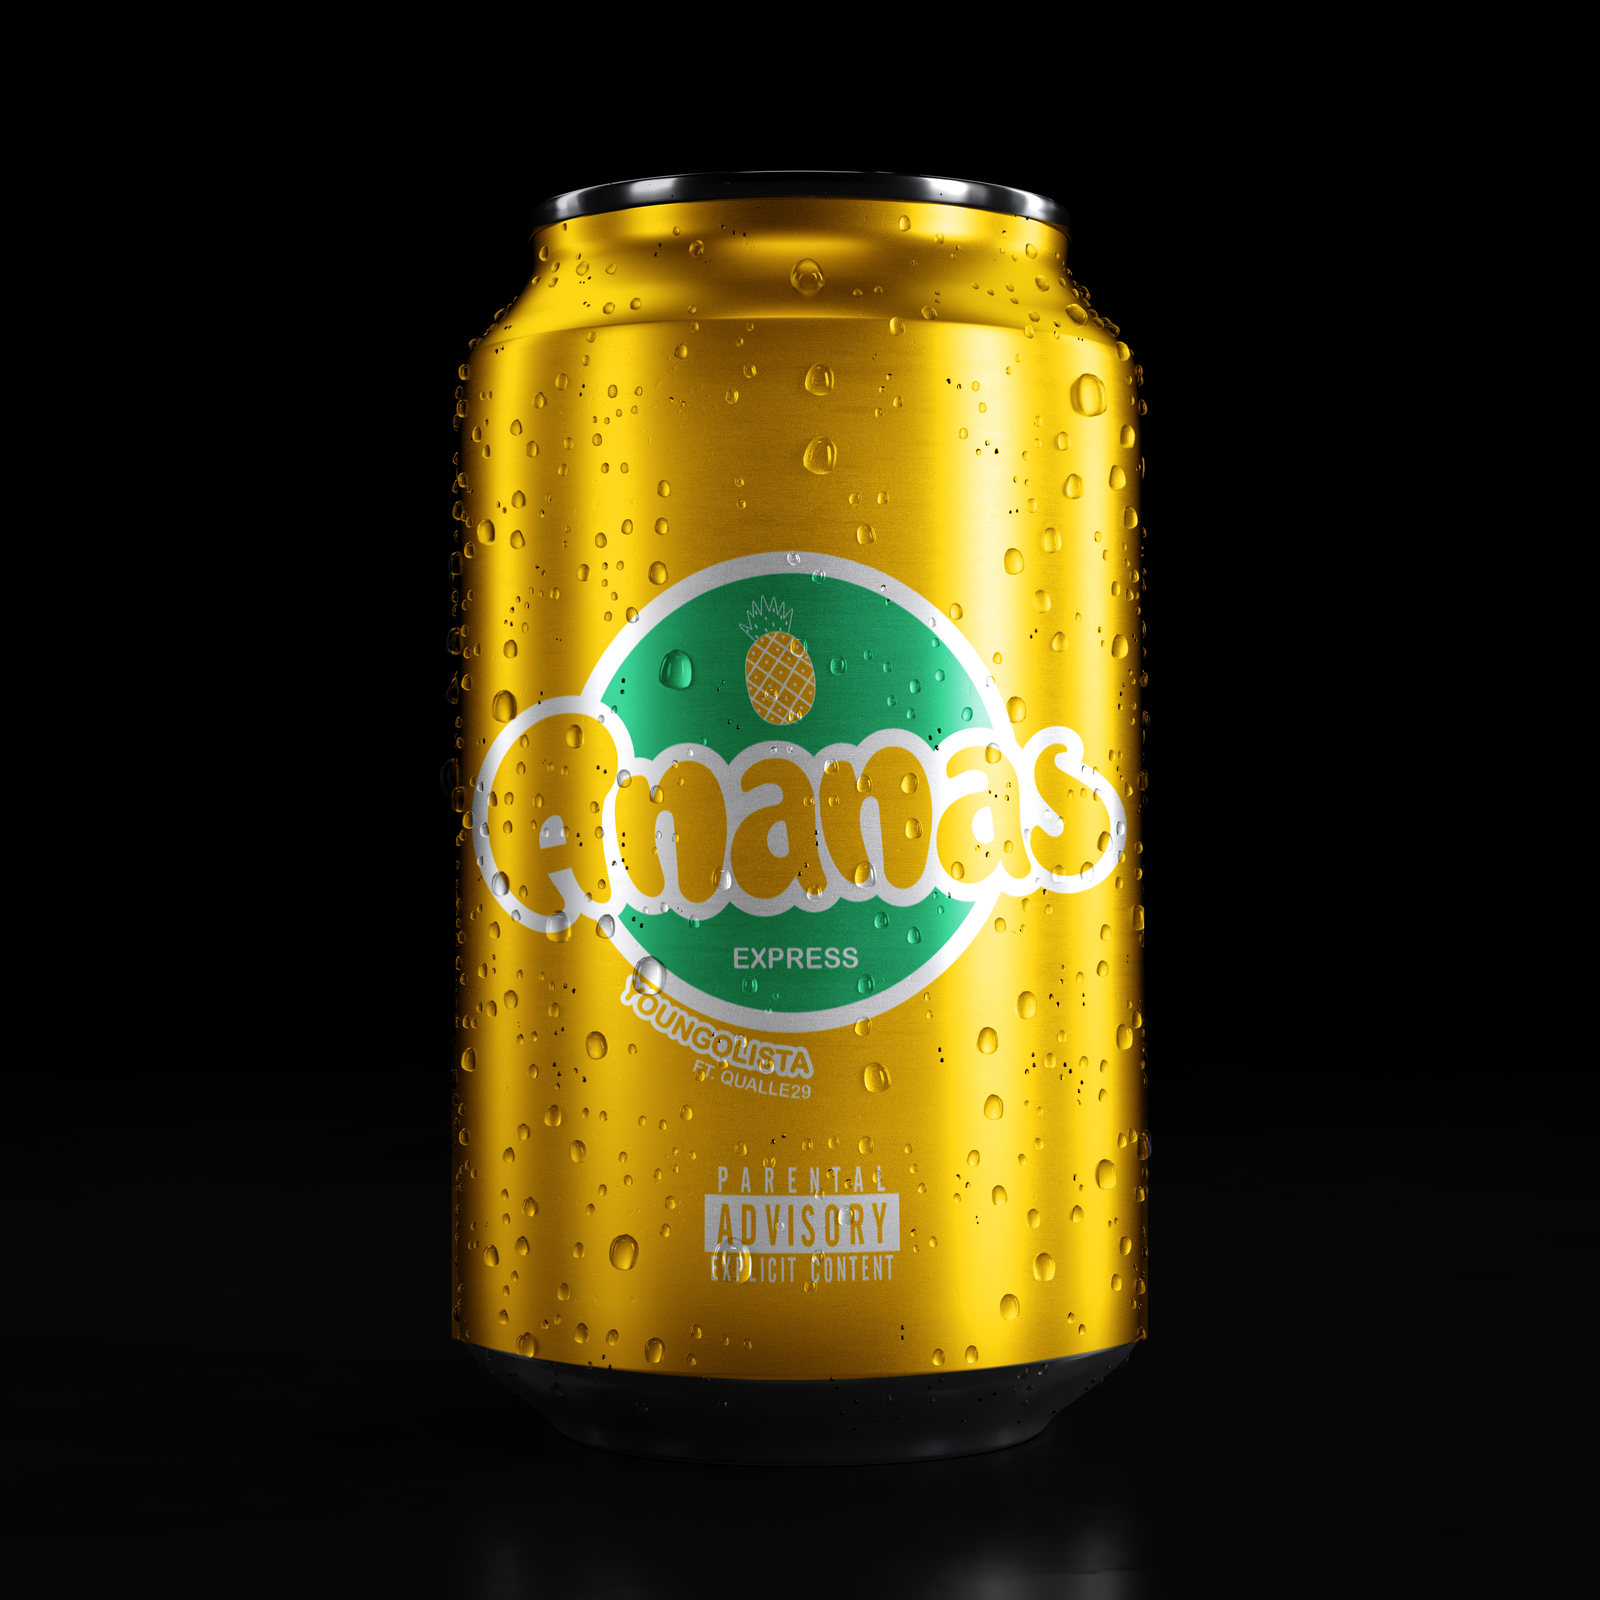 Upcoming: youngolista - Ananas Express (feat. Qualle29)